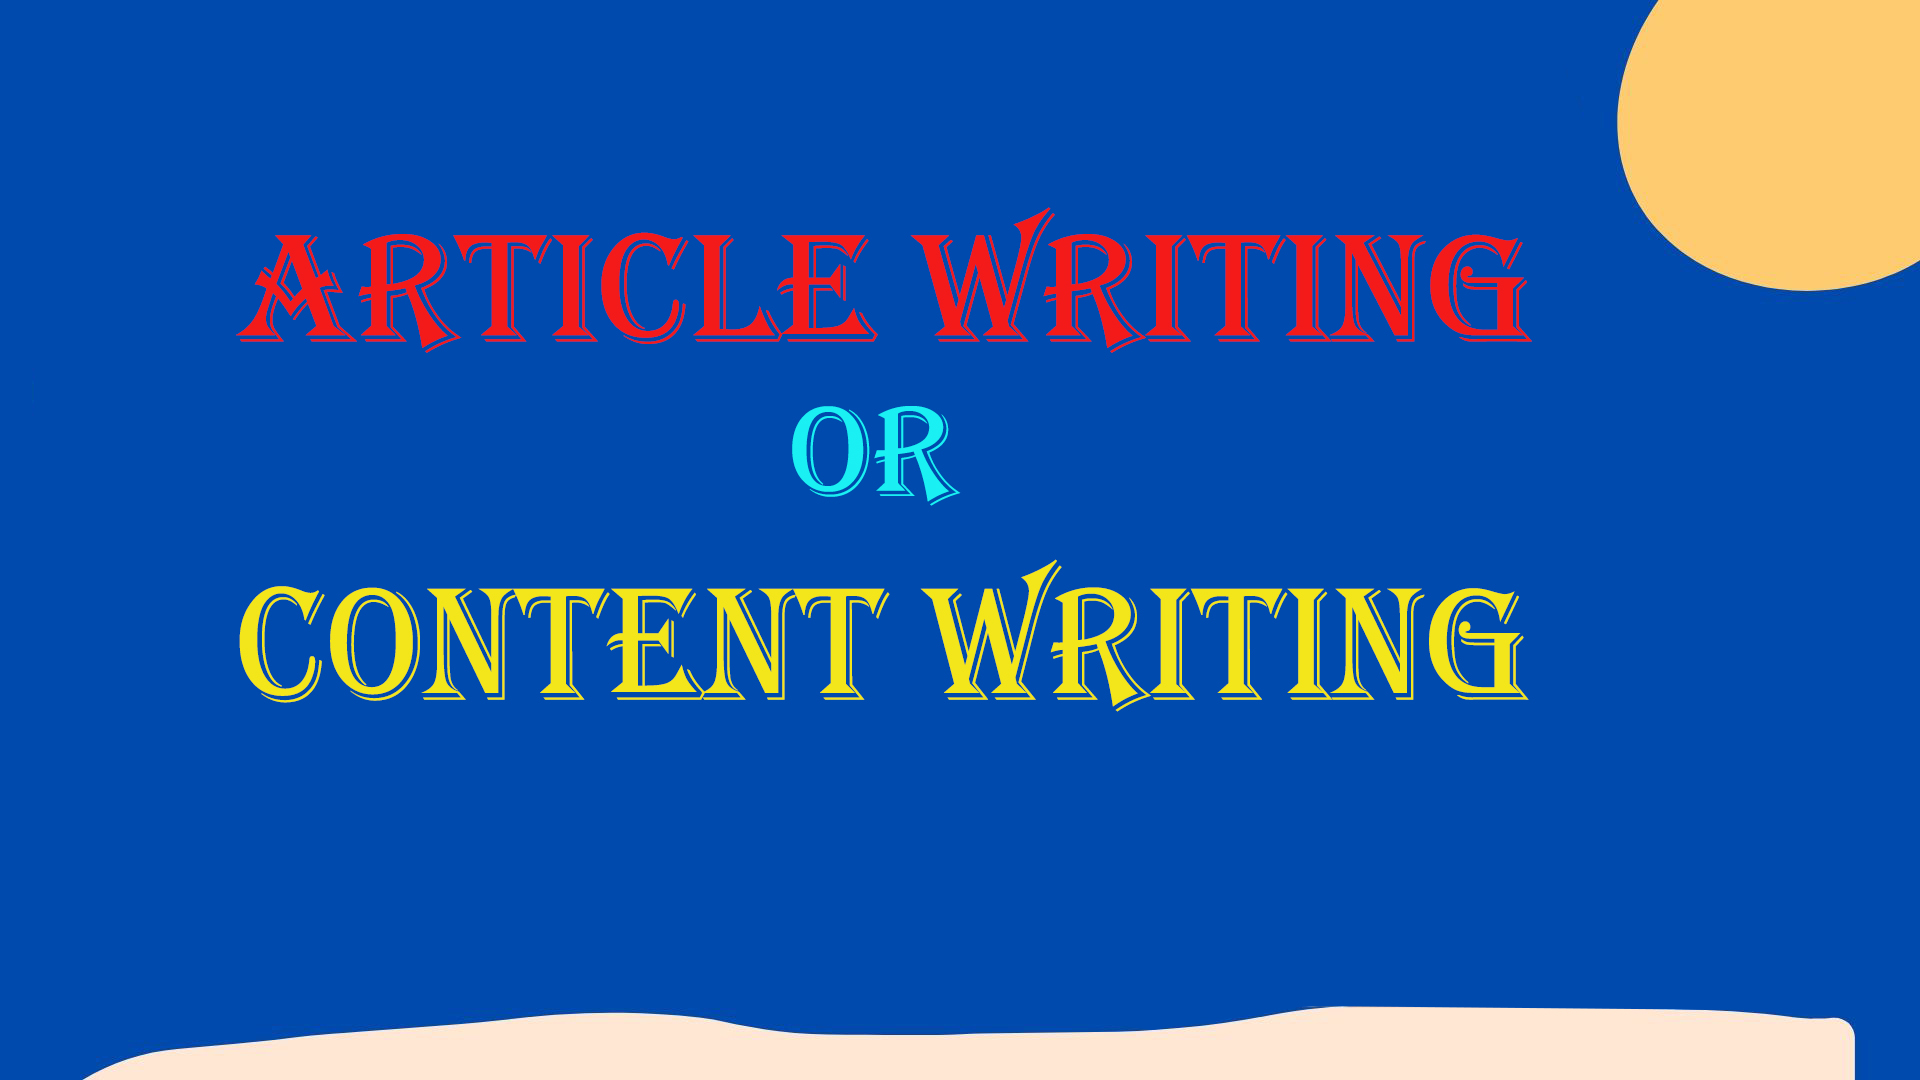 400 words article writing, blog writing, content writing.